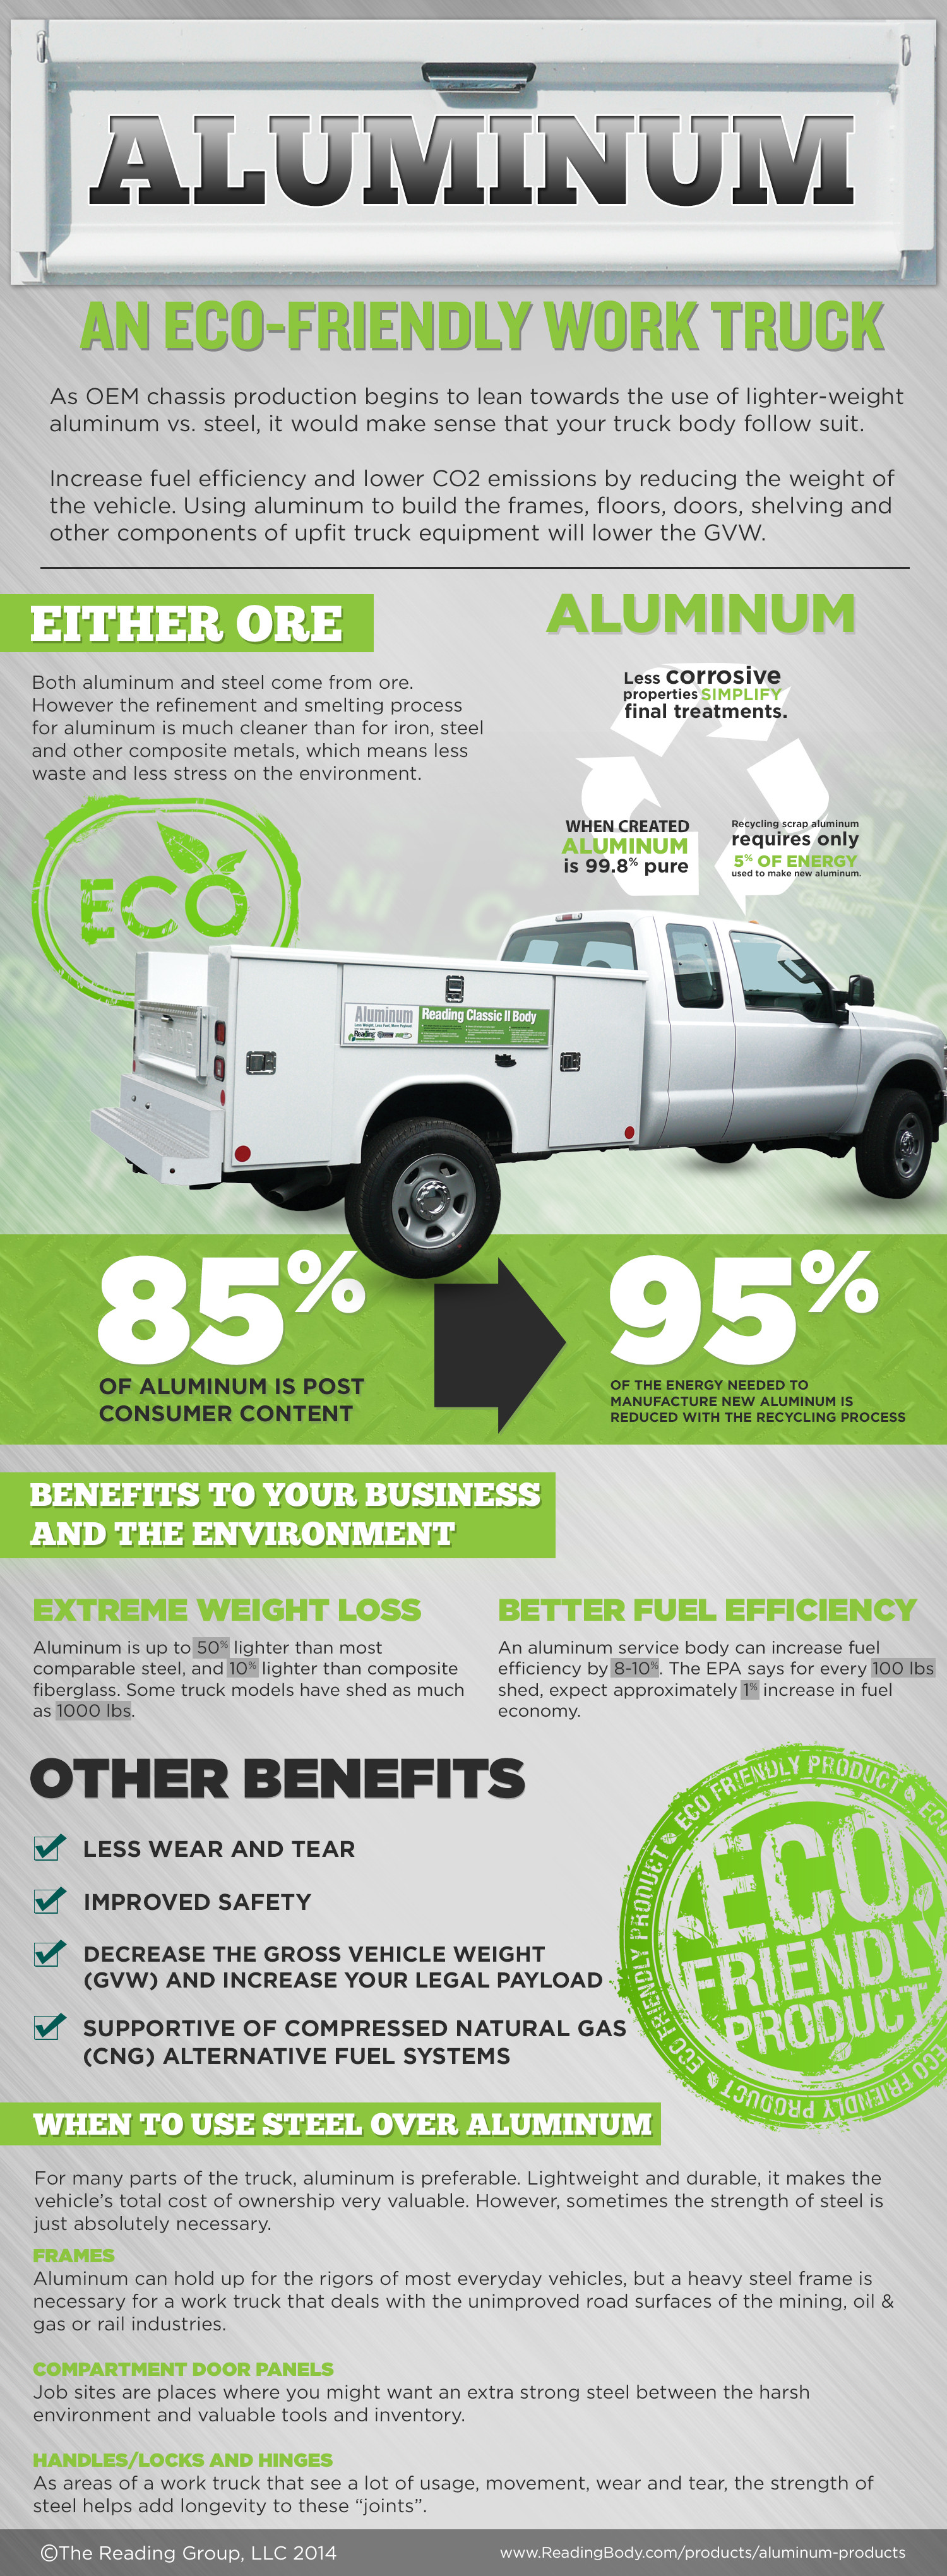 Aluminum: An Eco Friendly Work Truck  Infographic